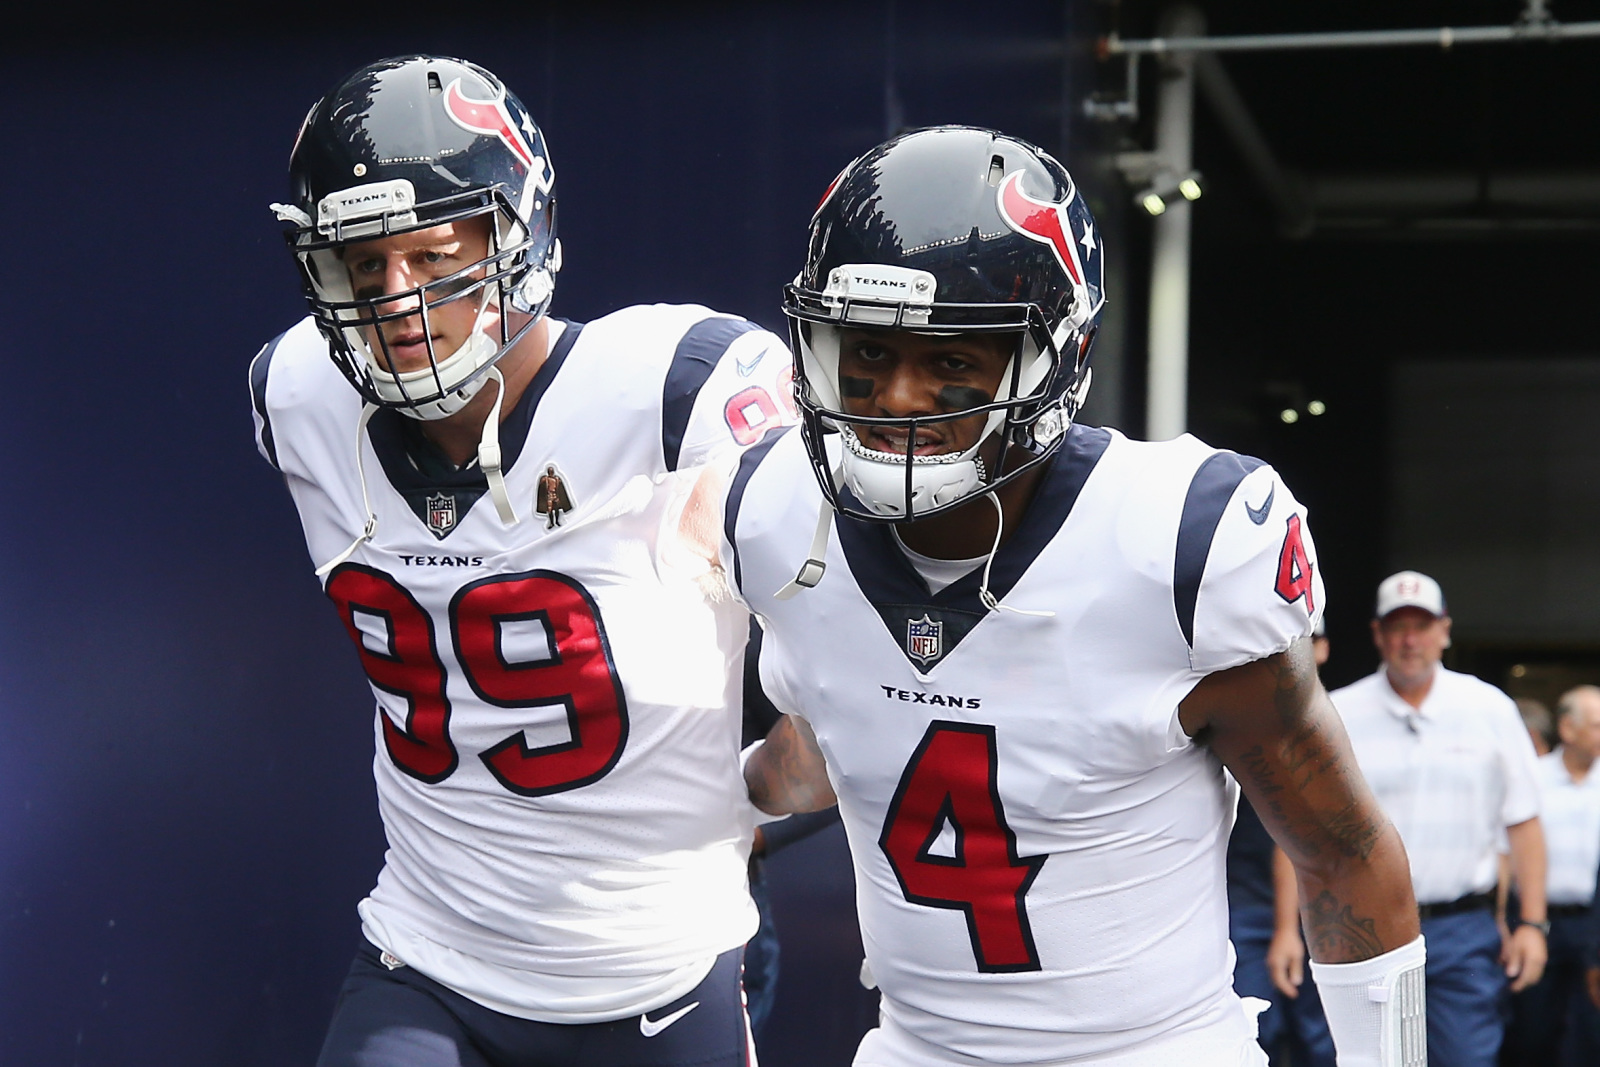 Houston Texans: Projected starting lineup before the NFL Draft